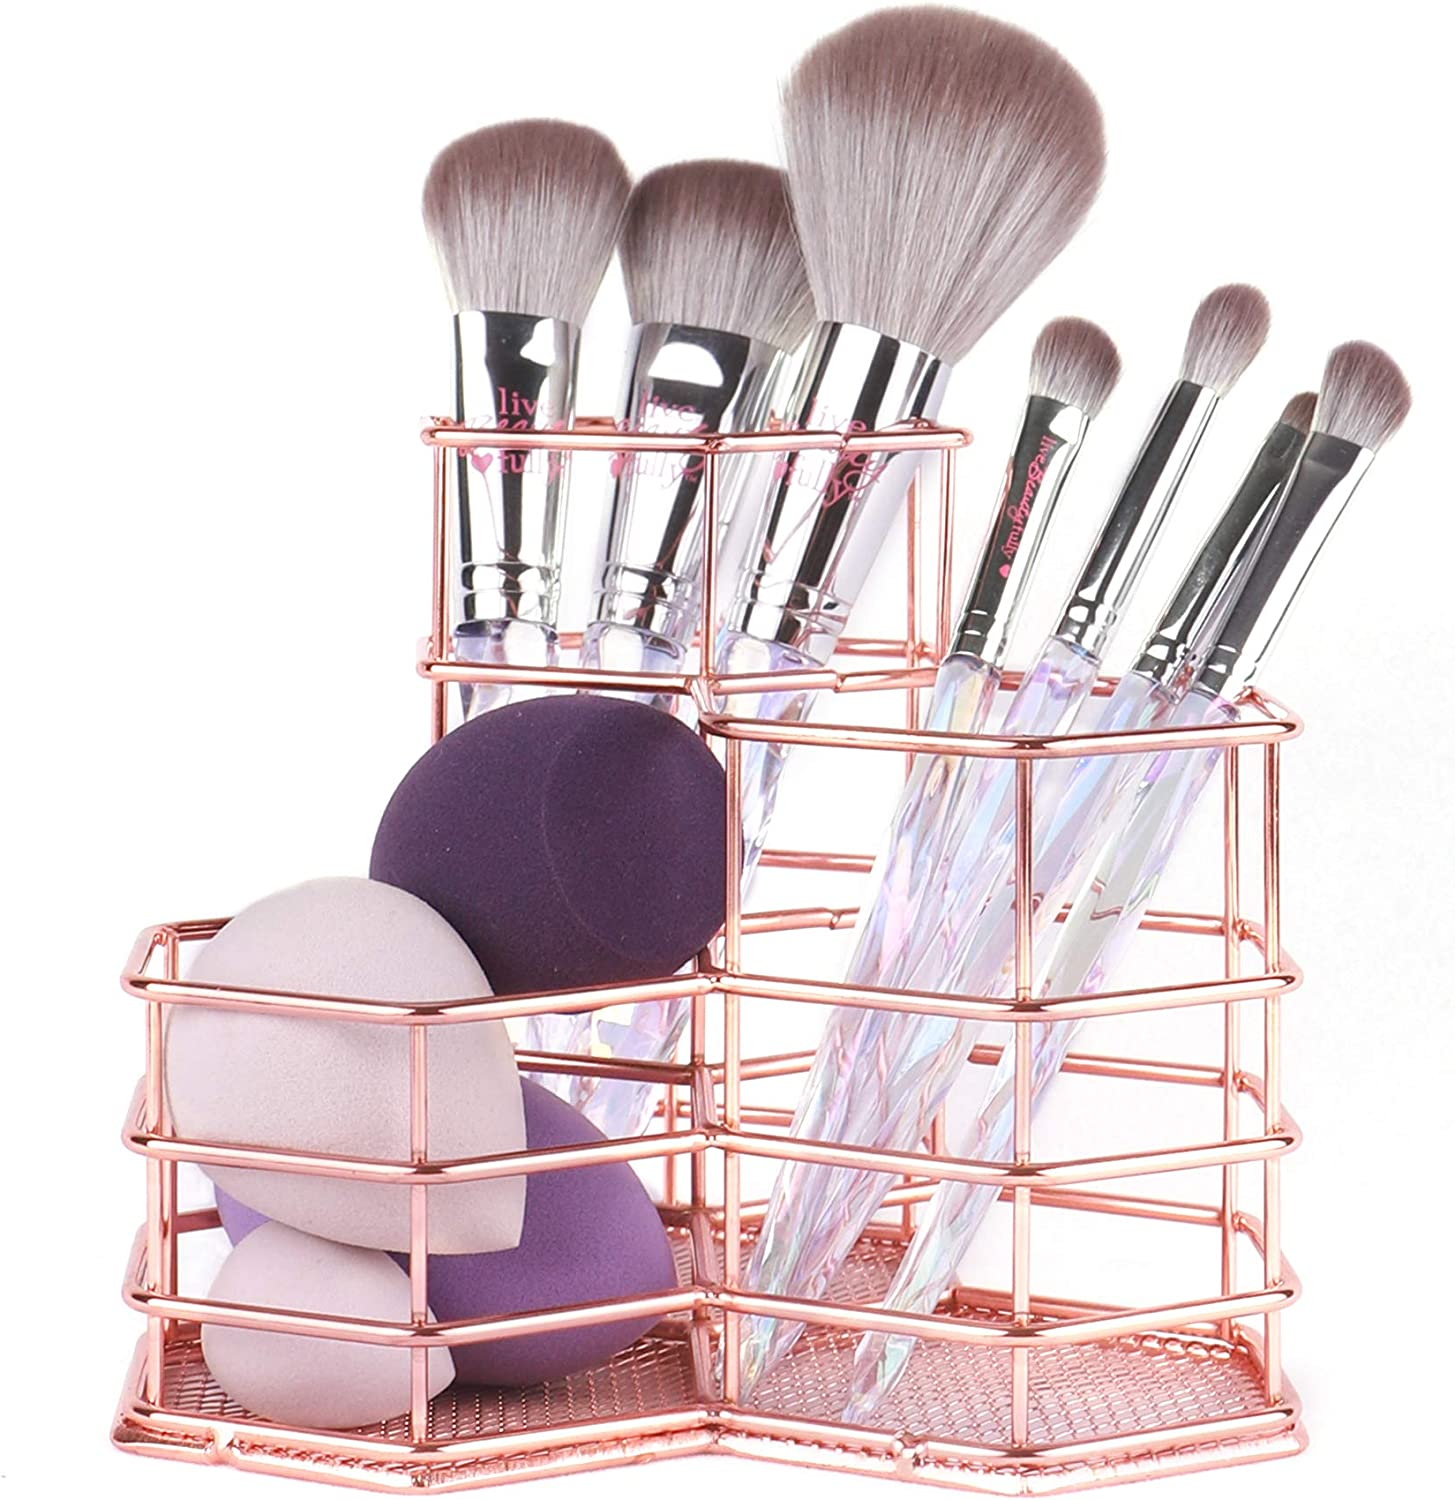 ANNE'S GIVERNY Makeup Brush Holder Metal Organizer Golden Rose Cosmetic Storage Beauty Sponges Blender holder Display